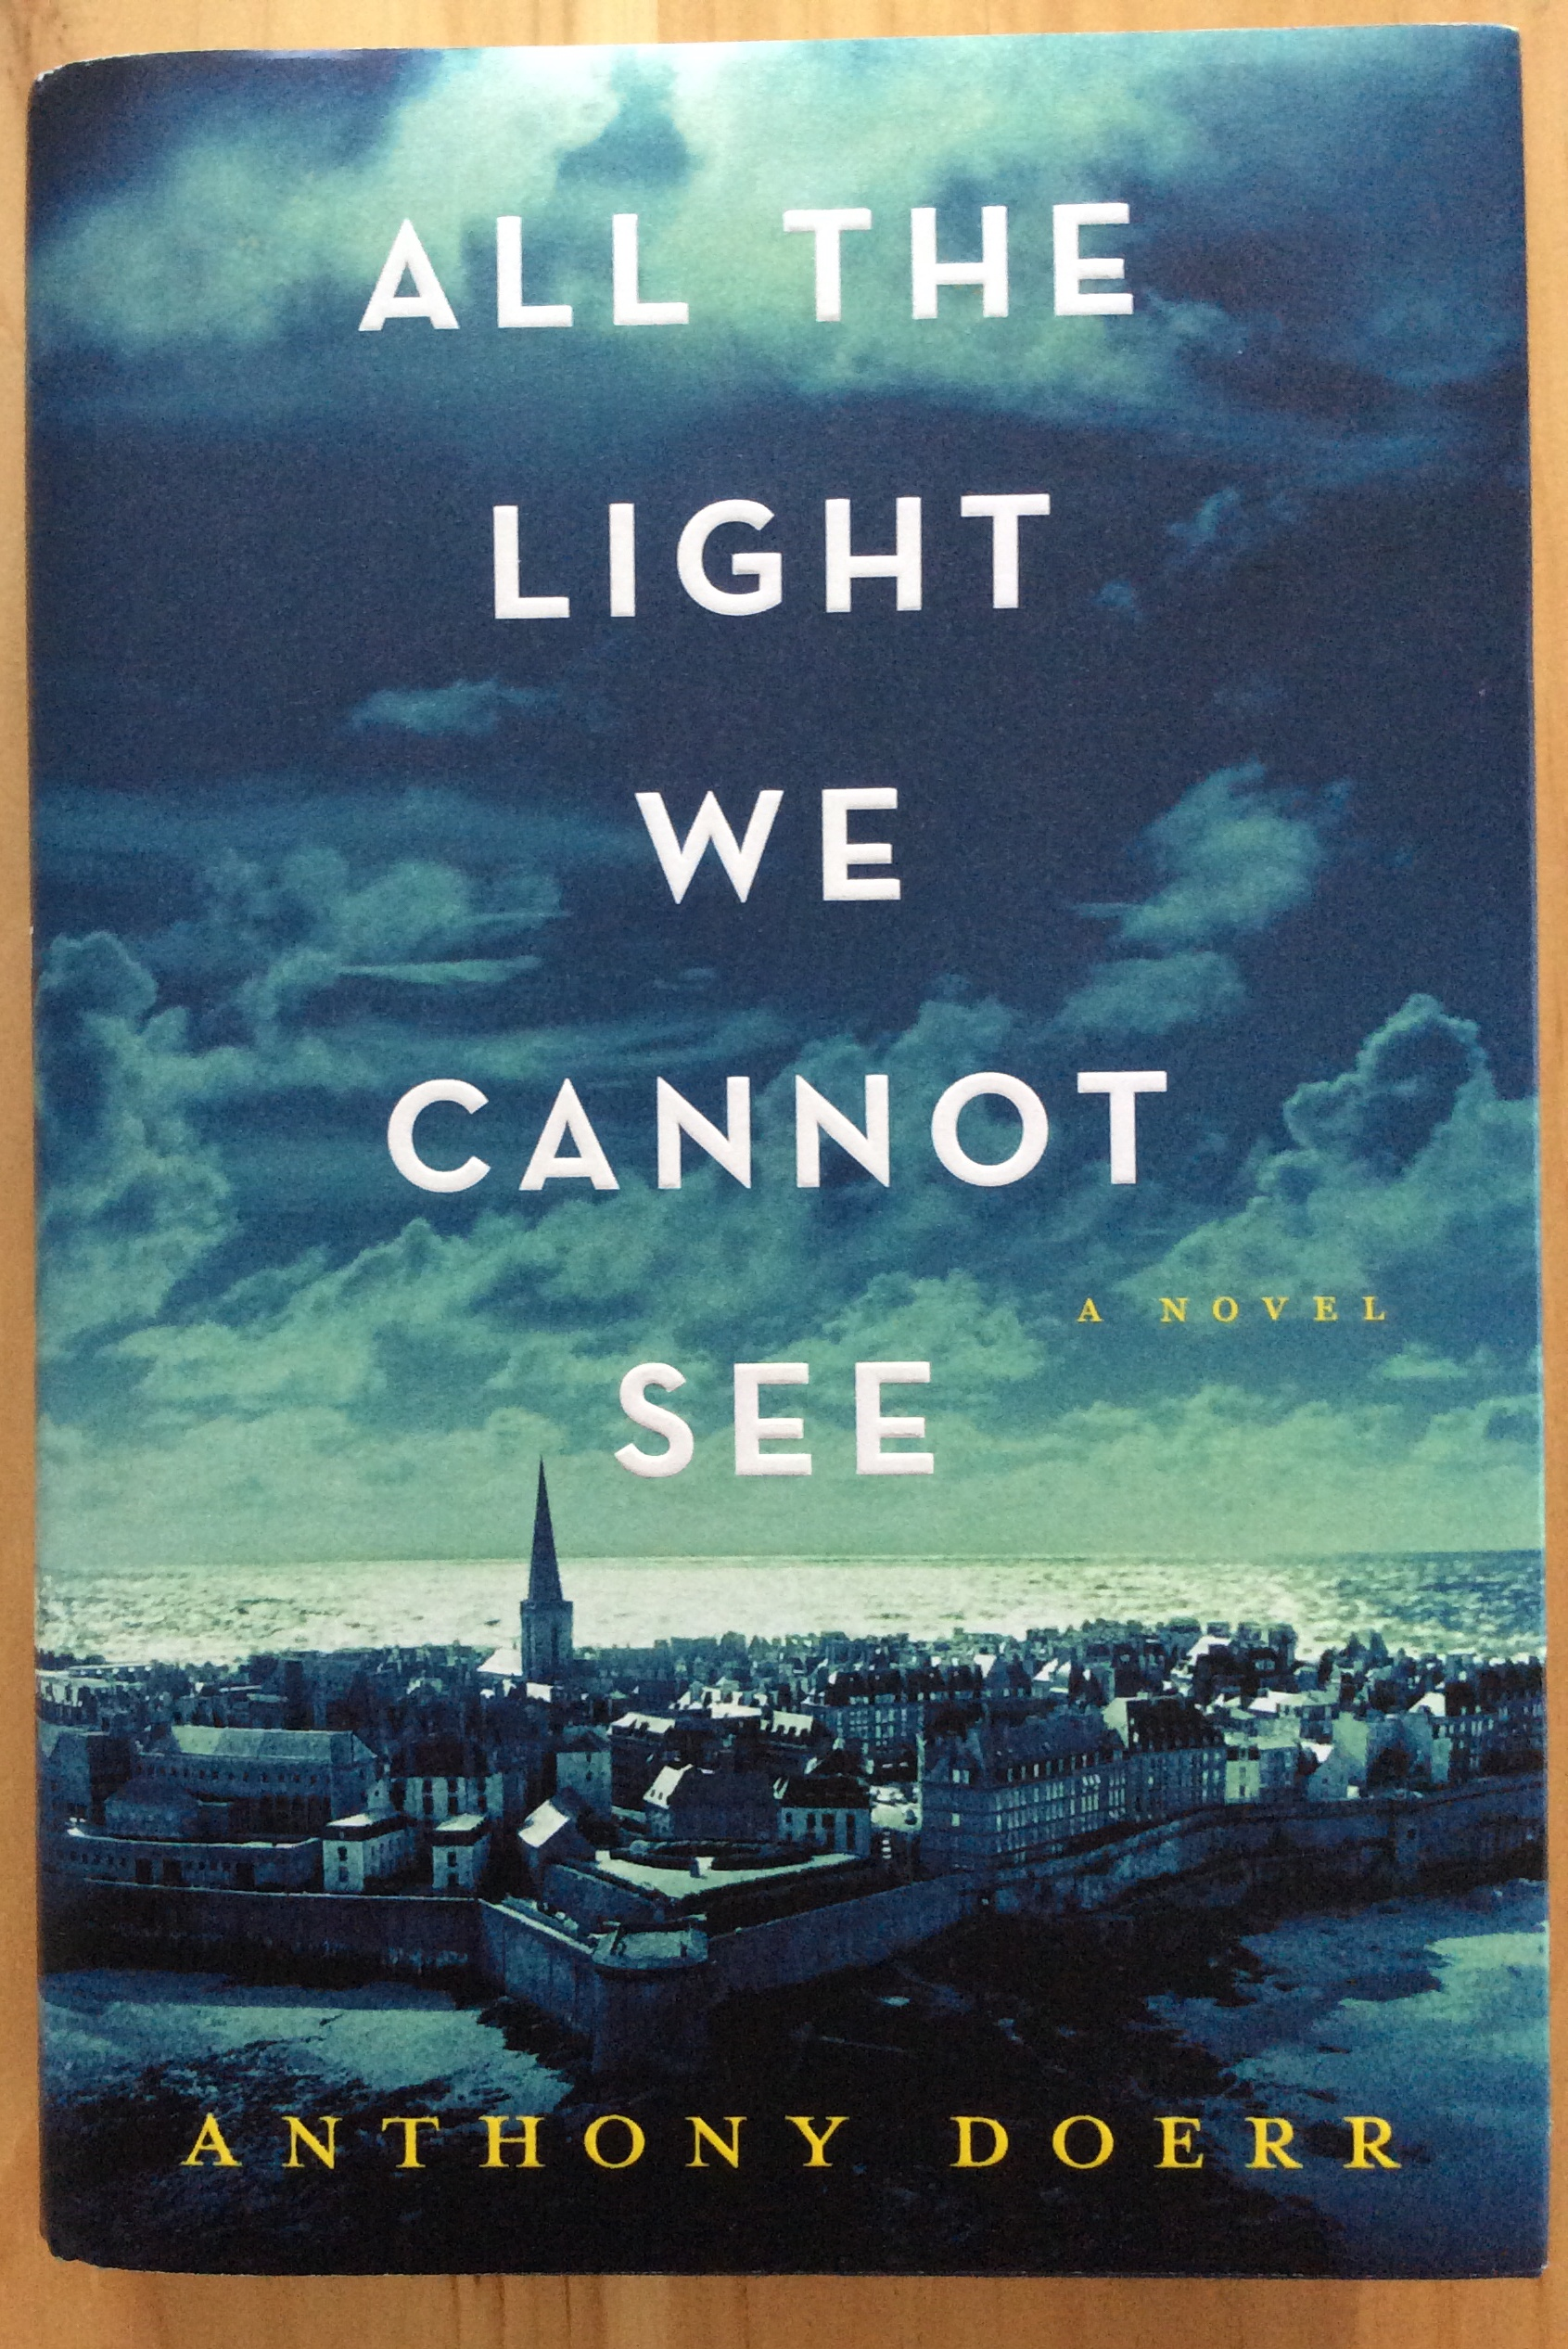 Light we cannot see by anthony doerr rosemary and reading glasses